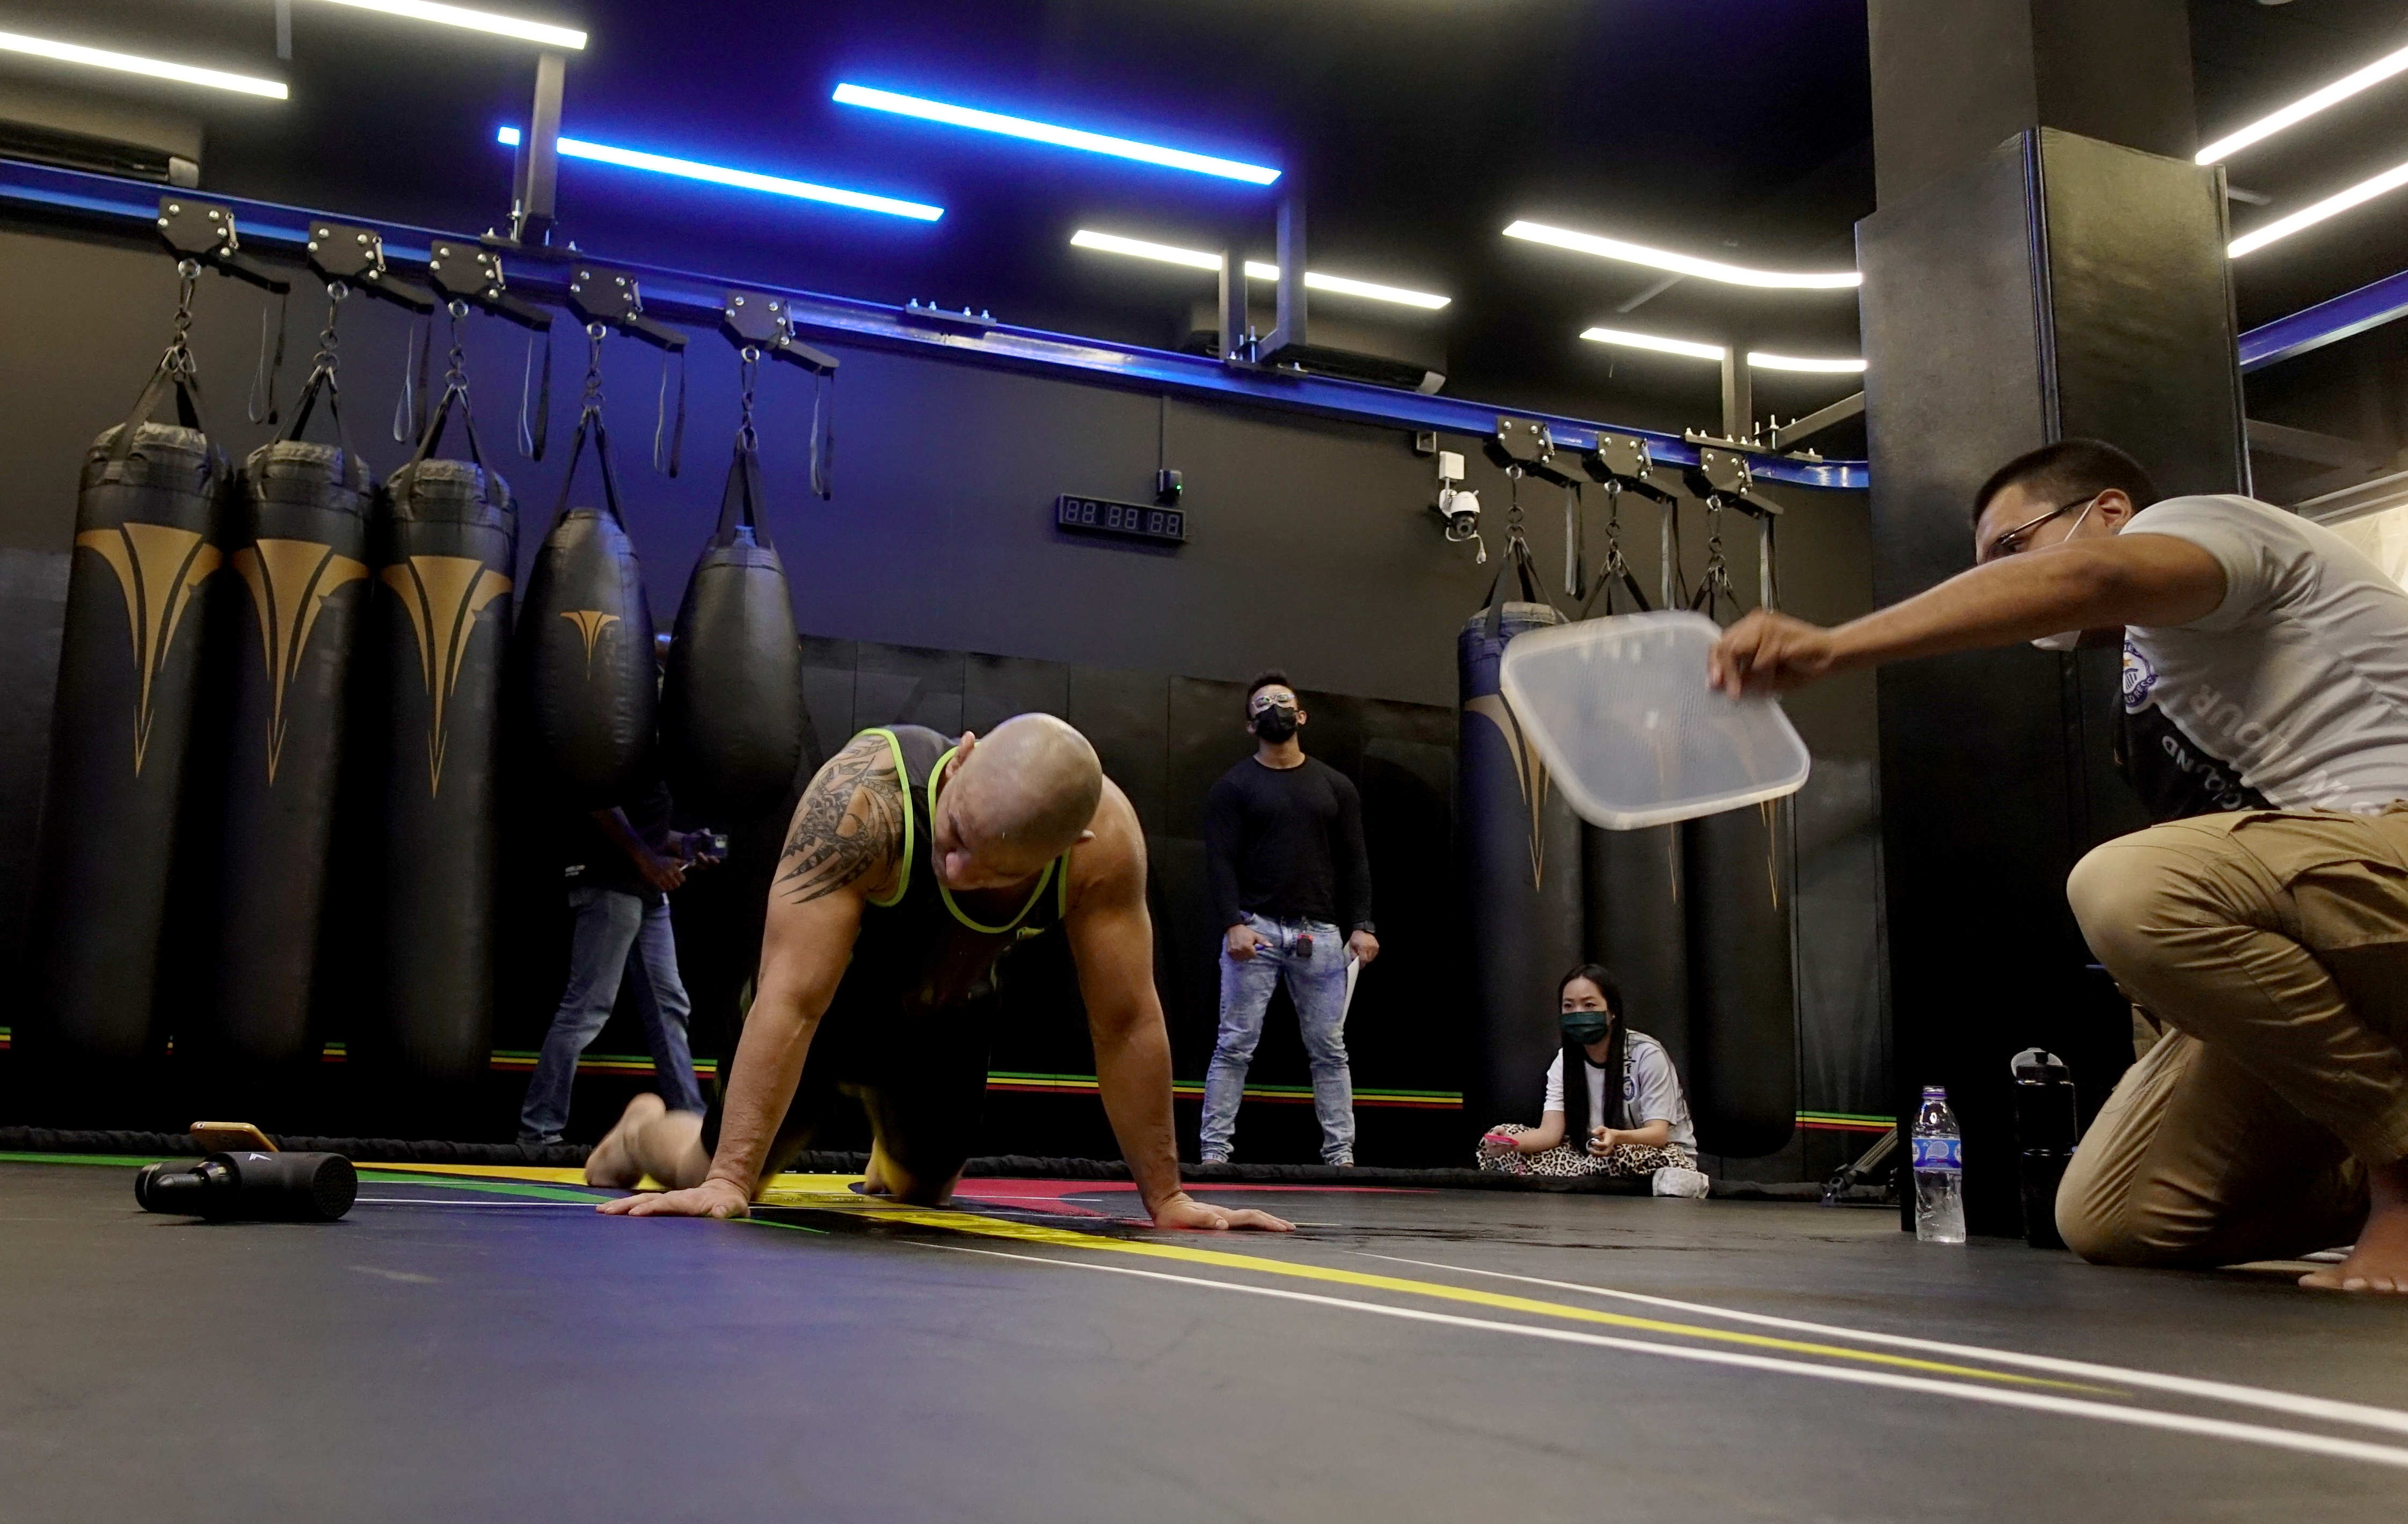 Cassiano Rodrigues Laureano breaks Guinness World Record of most number of burpees in 60 minutes, in Singapore June 25, 2021. REUTERS/Joseph Campbell